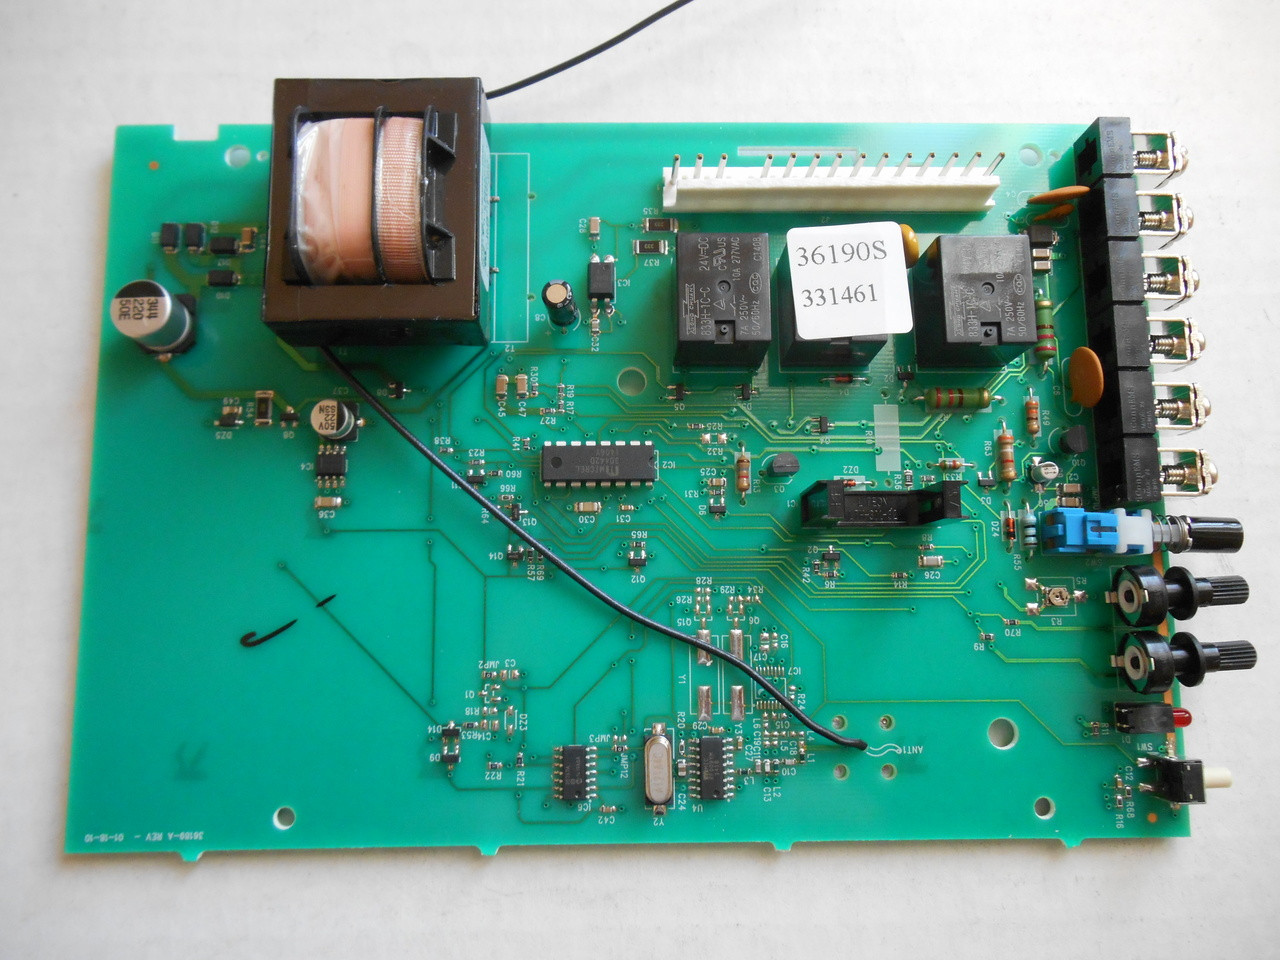 small resolution of circuit board genie chainglide 20380s overhead door parts online genie pro max capacitor genie pro max circuit board wiring diagram